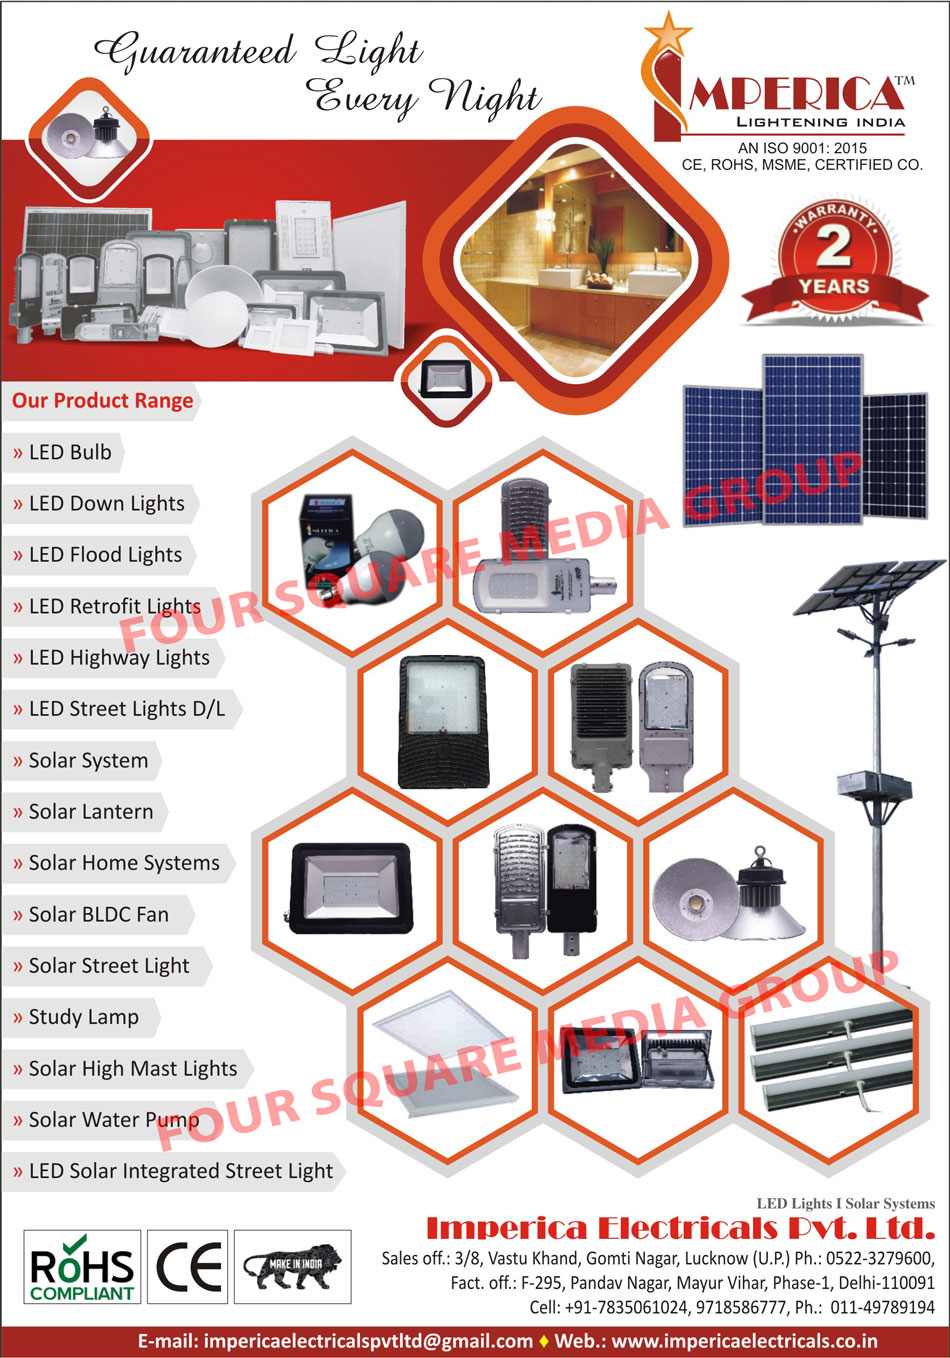 Led Lights, Led Bulbs, Led Down Lights, Led Flood Lights, Led Retrofit Lights, Led High Bay Lights, Led Street Lights, Solar Systems, Solar Lanterns, Solar Home Systems, Solar BLDC Fans, Solar Street Lights, Study Lamps, Solar High Mast Lights, Solar Water Pumps, Led Solar Integrated Street Lights